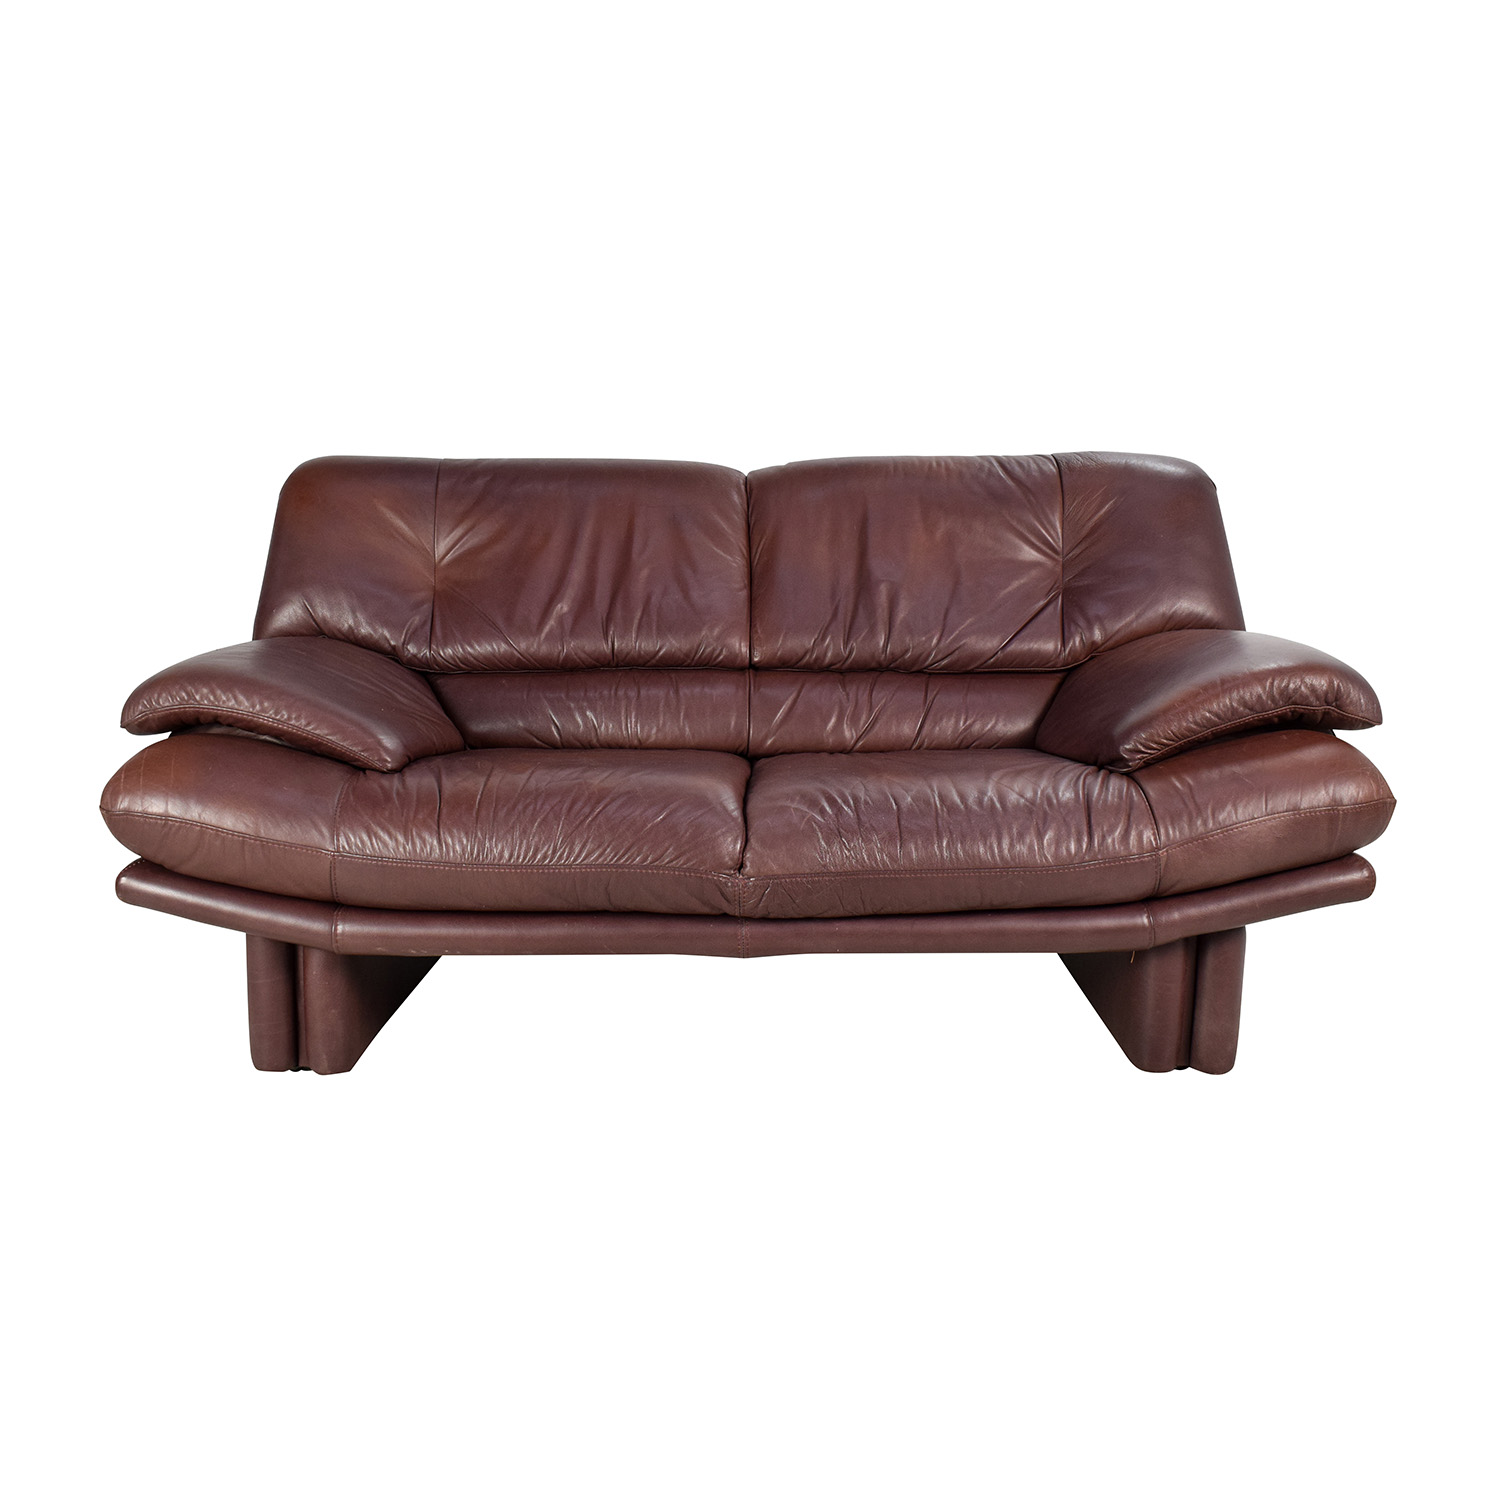 Sofas Online Valencia 67 Off Maurice Villency Maurice Villency Brown Leather Sofa Sofas